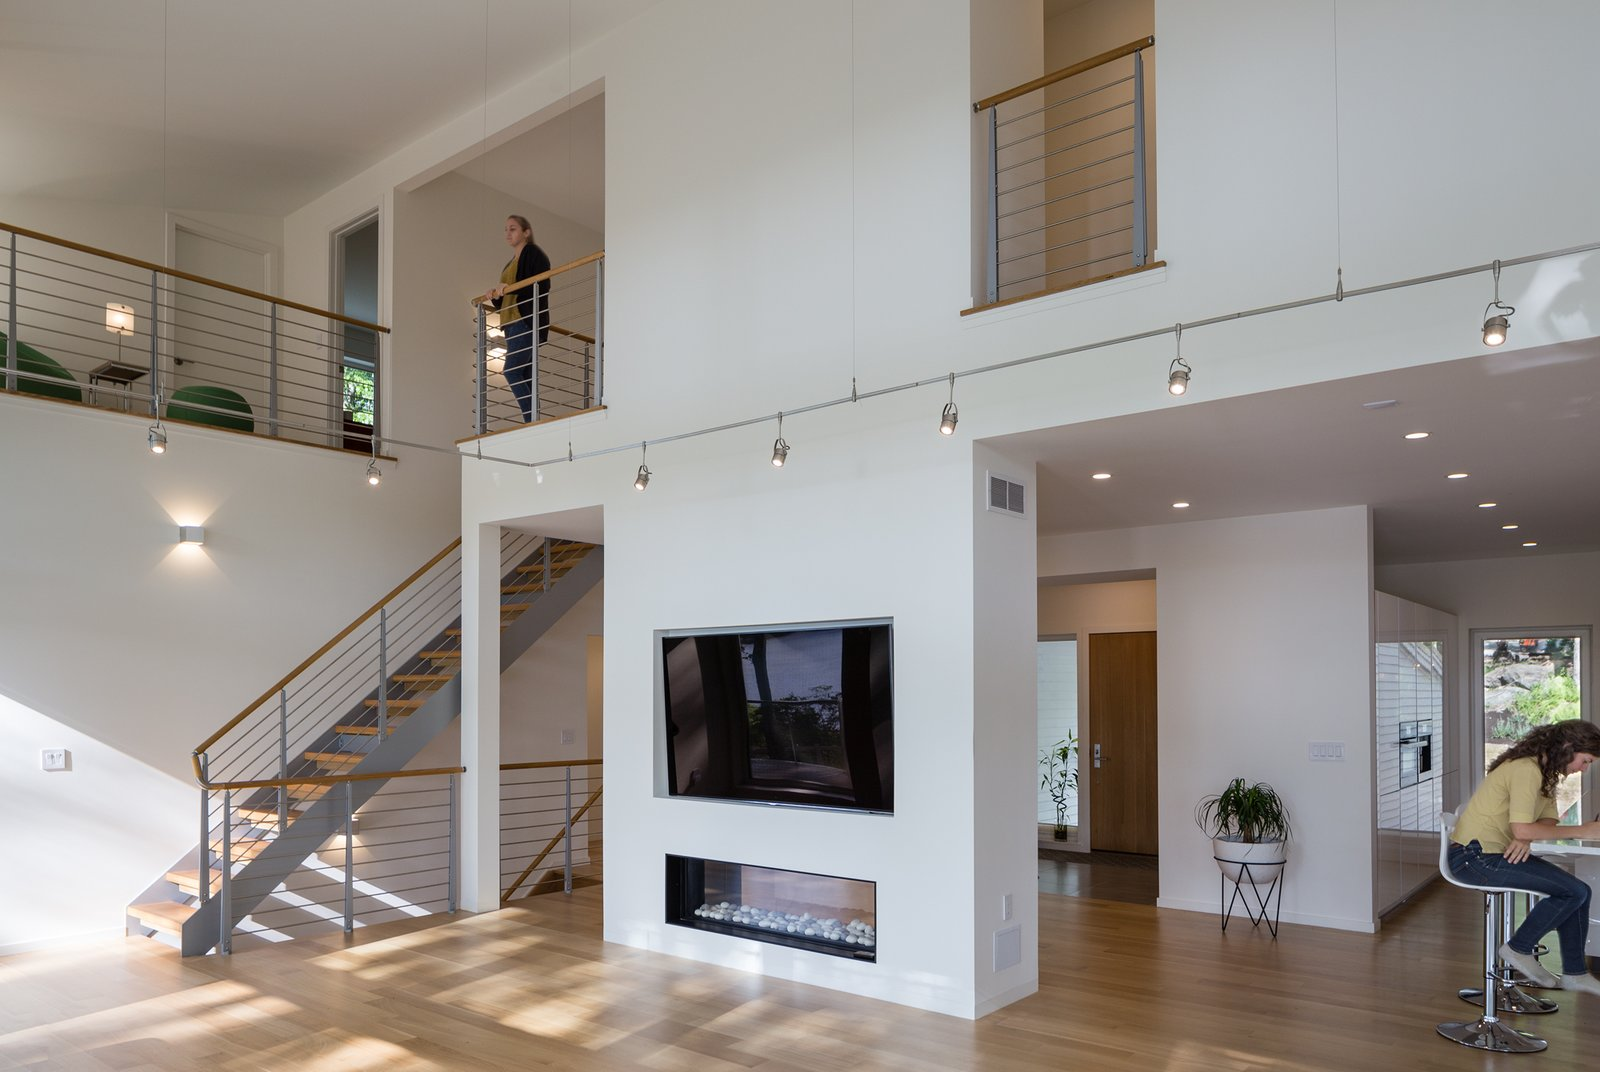 View of second floor gallery  Khabensky Residence by Richard Pedranti Architect